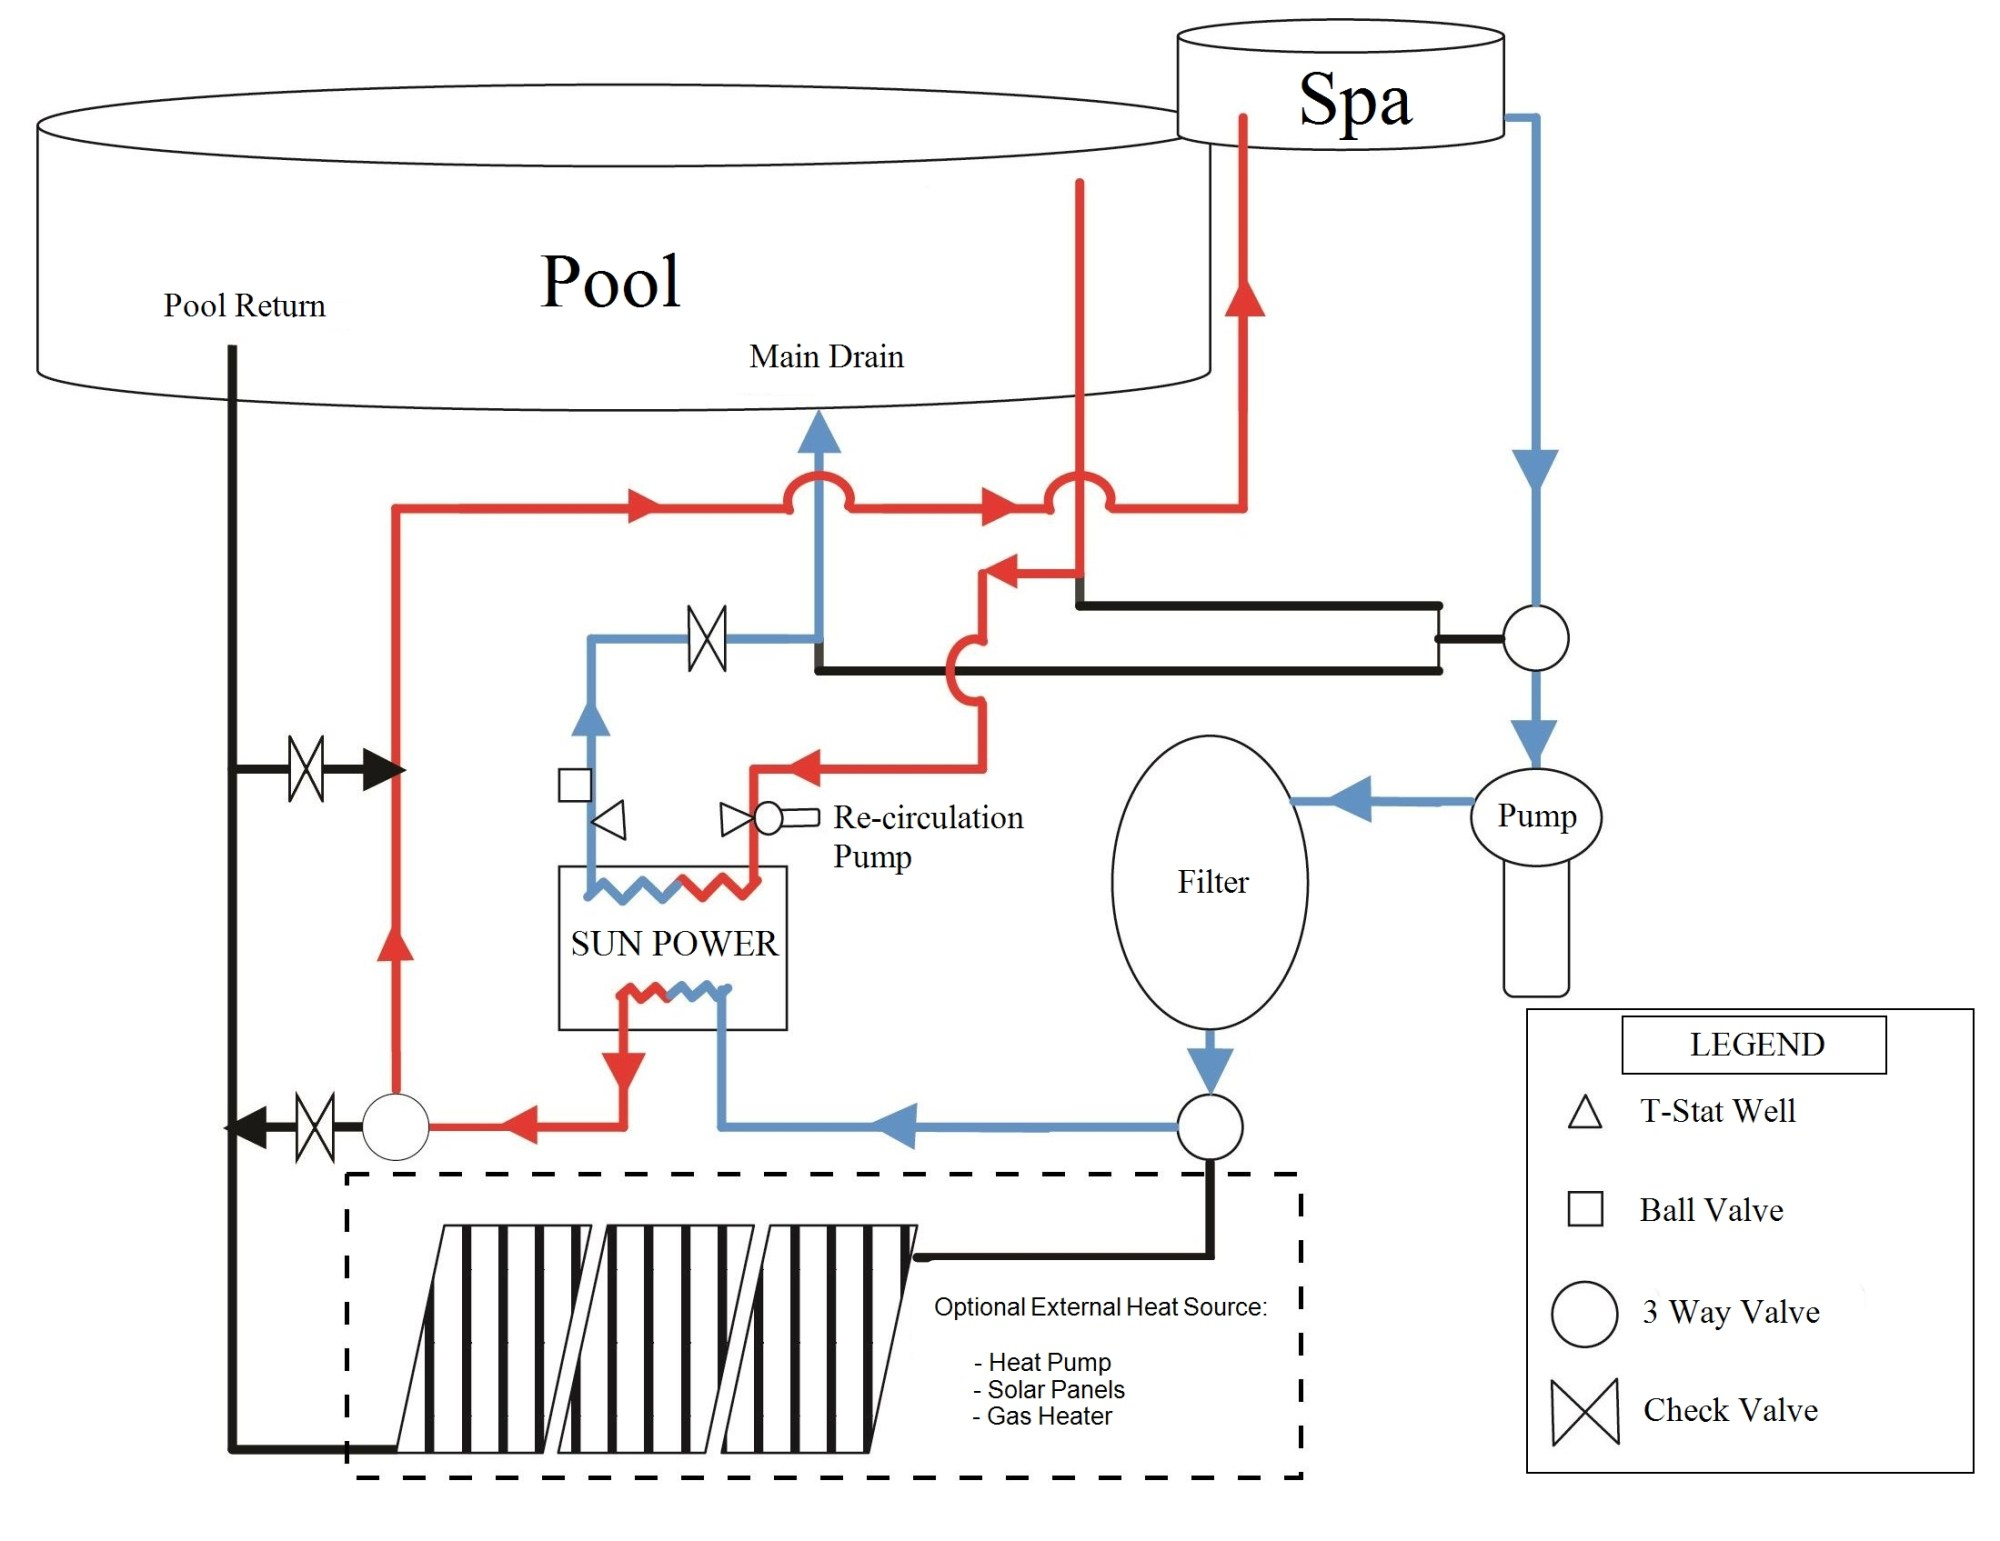 hight resolution of spa system diagrams wiring diagram third levelspa system diagrams wiring diagrams spa controller schematic spa configuration